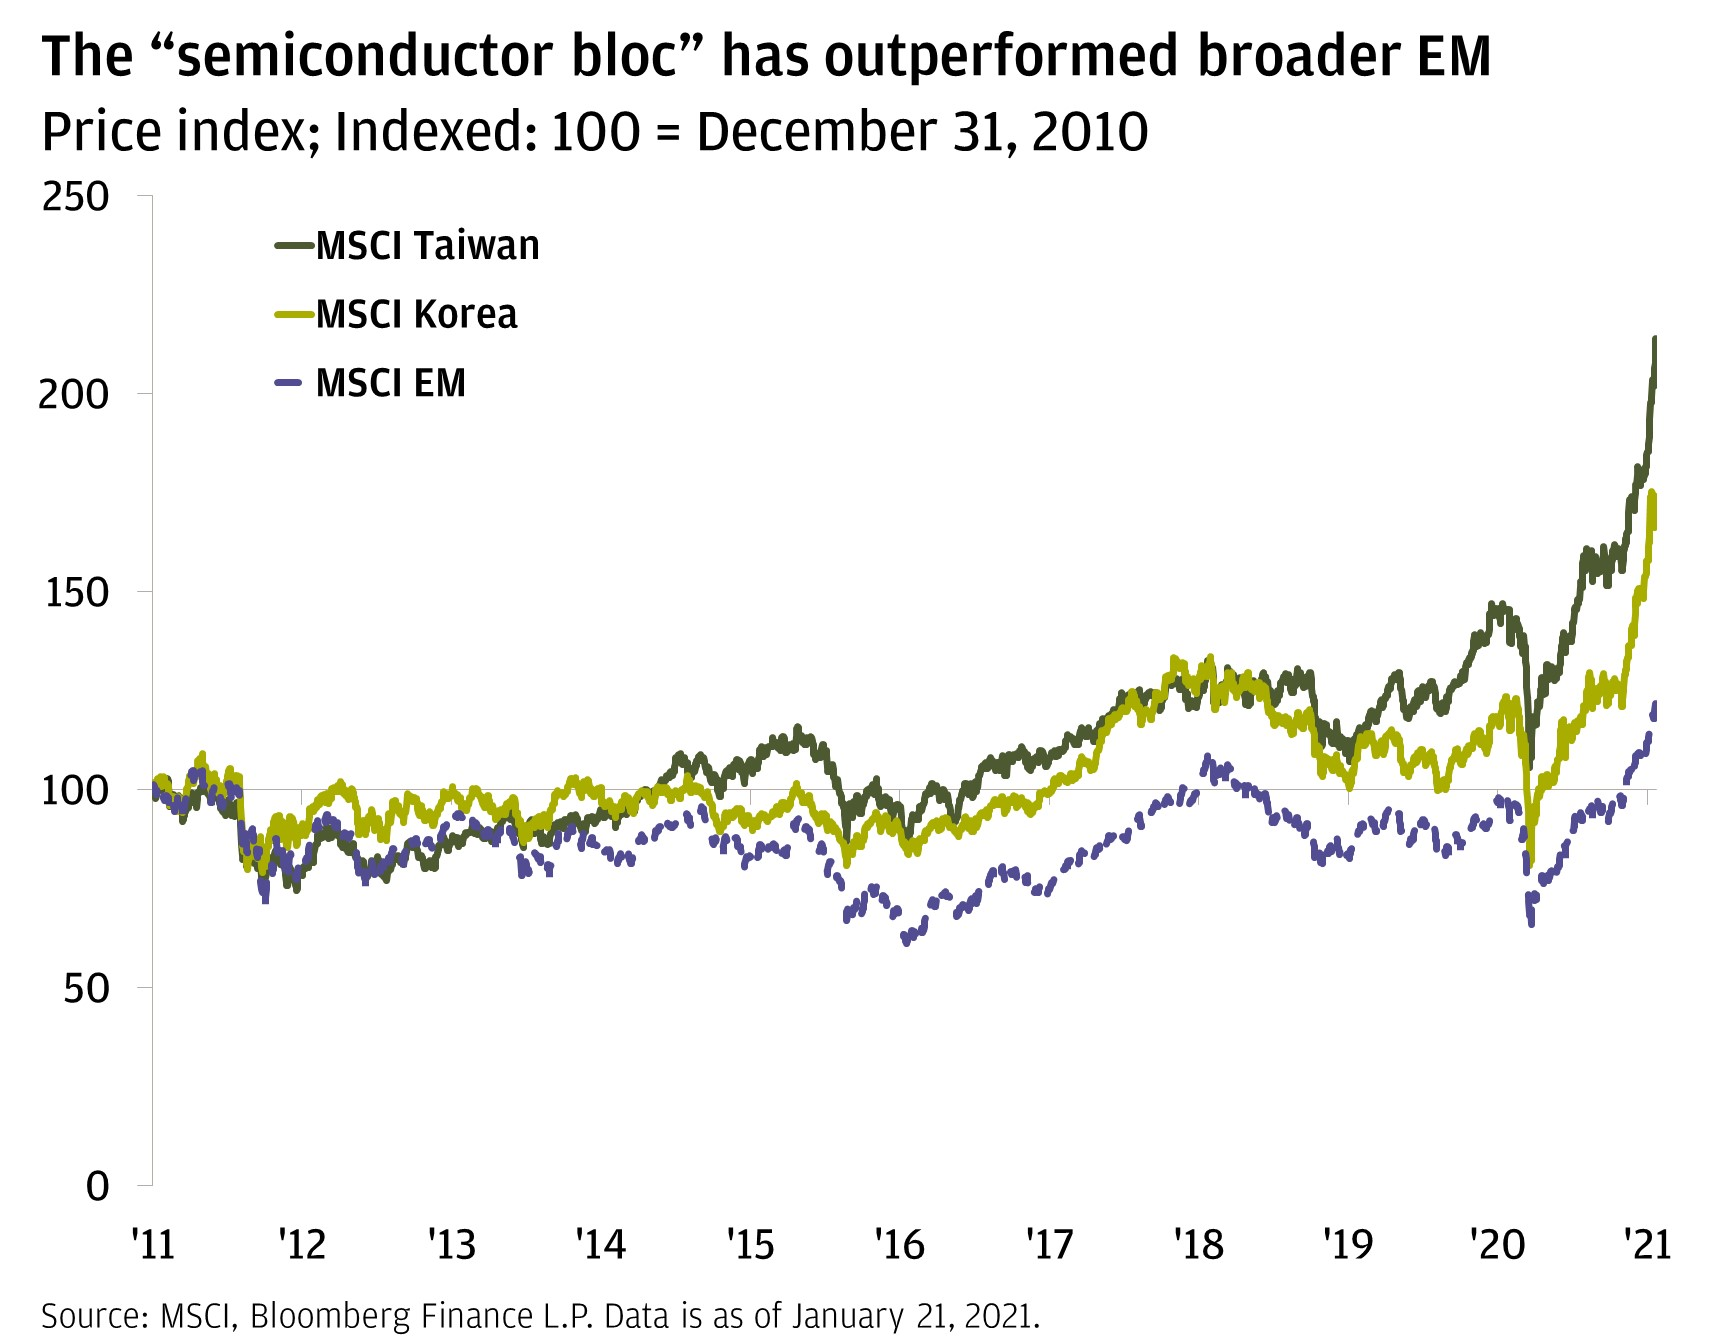 "The chart shows the indexed performance of the MSCI Taiwan, Korea and Emerging Market Indices since the start of 2011 through today. Taiwan and Korea, which represent the region's new ""semiconductor bloc,"" have outperformed the broader emerging markets complex."